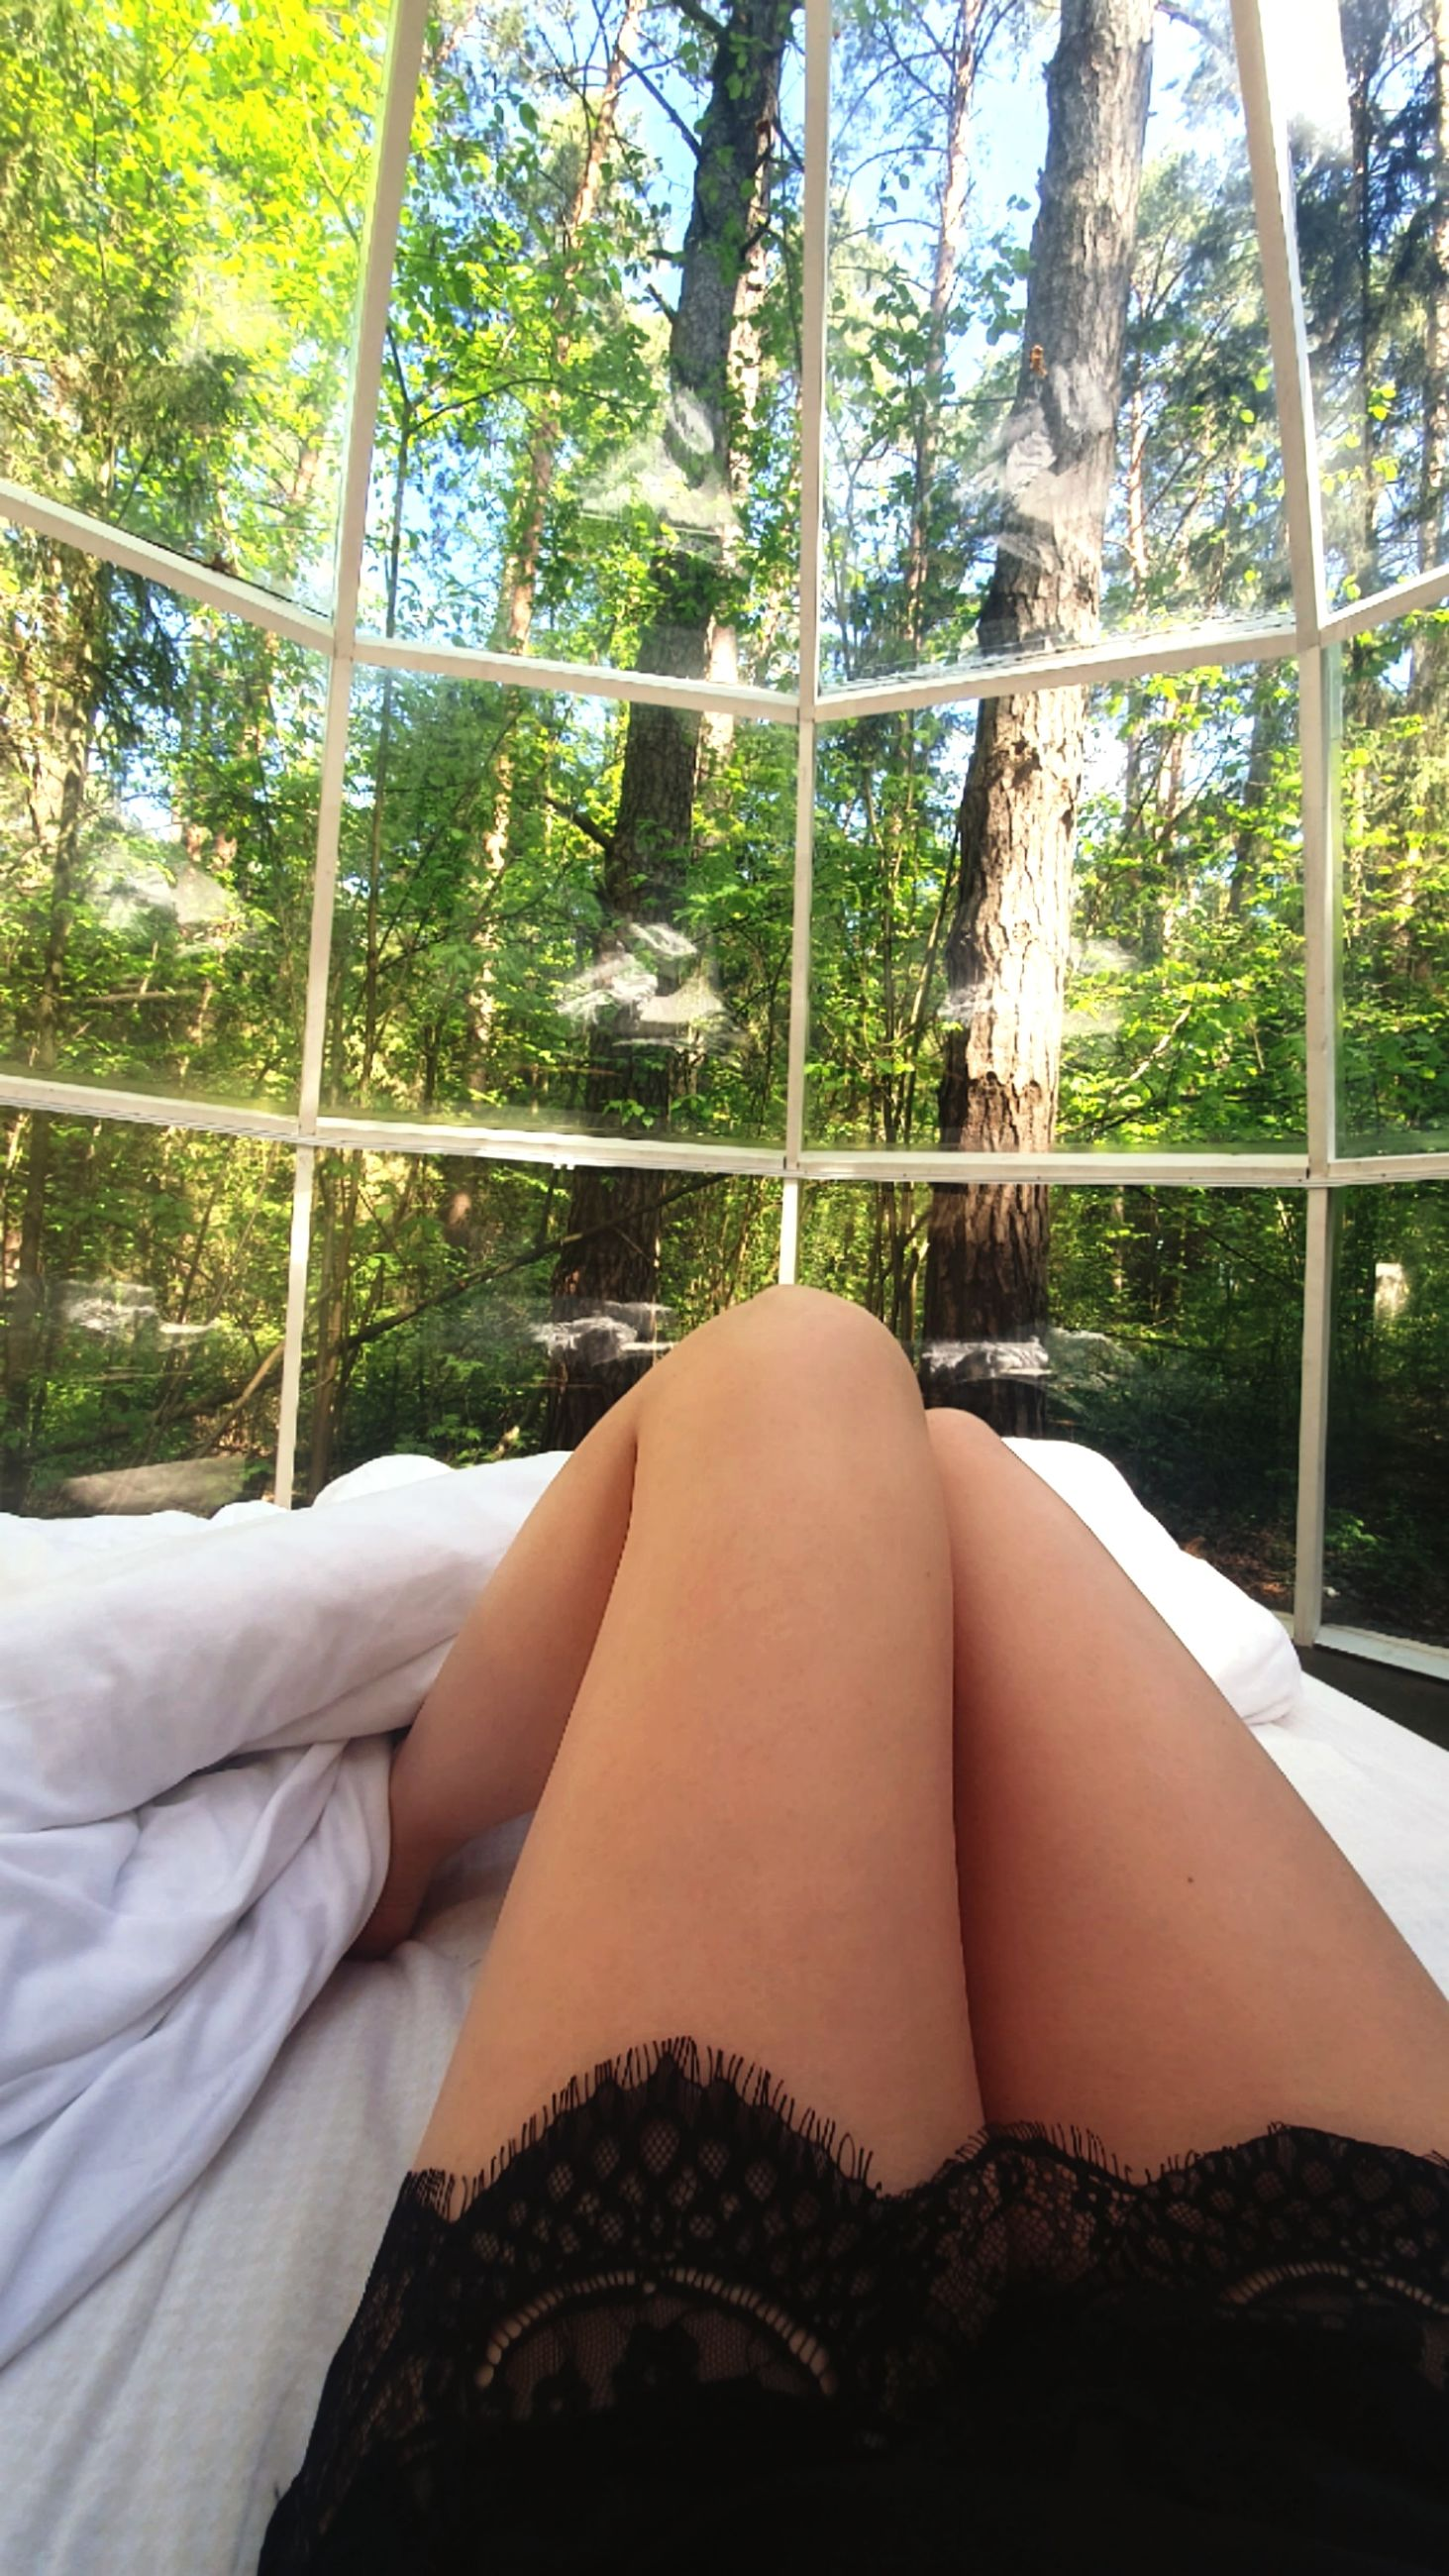 human body part, tree, one person, relaxation, human leg, body part, real people, plant, low section, lifestyles, day, leisure activity, women, adult, young women, furniture, lying down, young adult, limb, outdoors, human limb, human foot